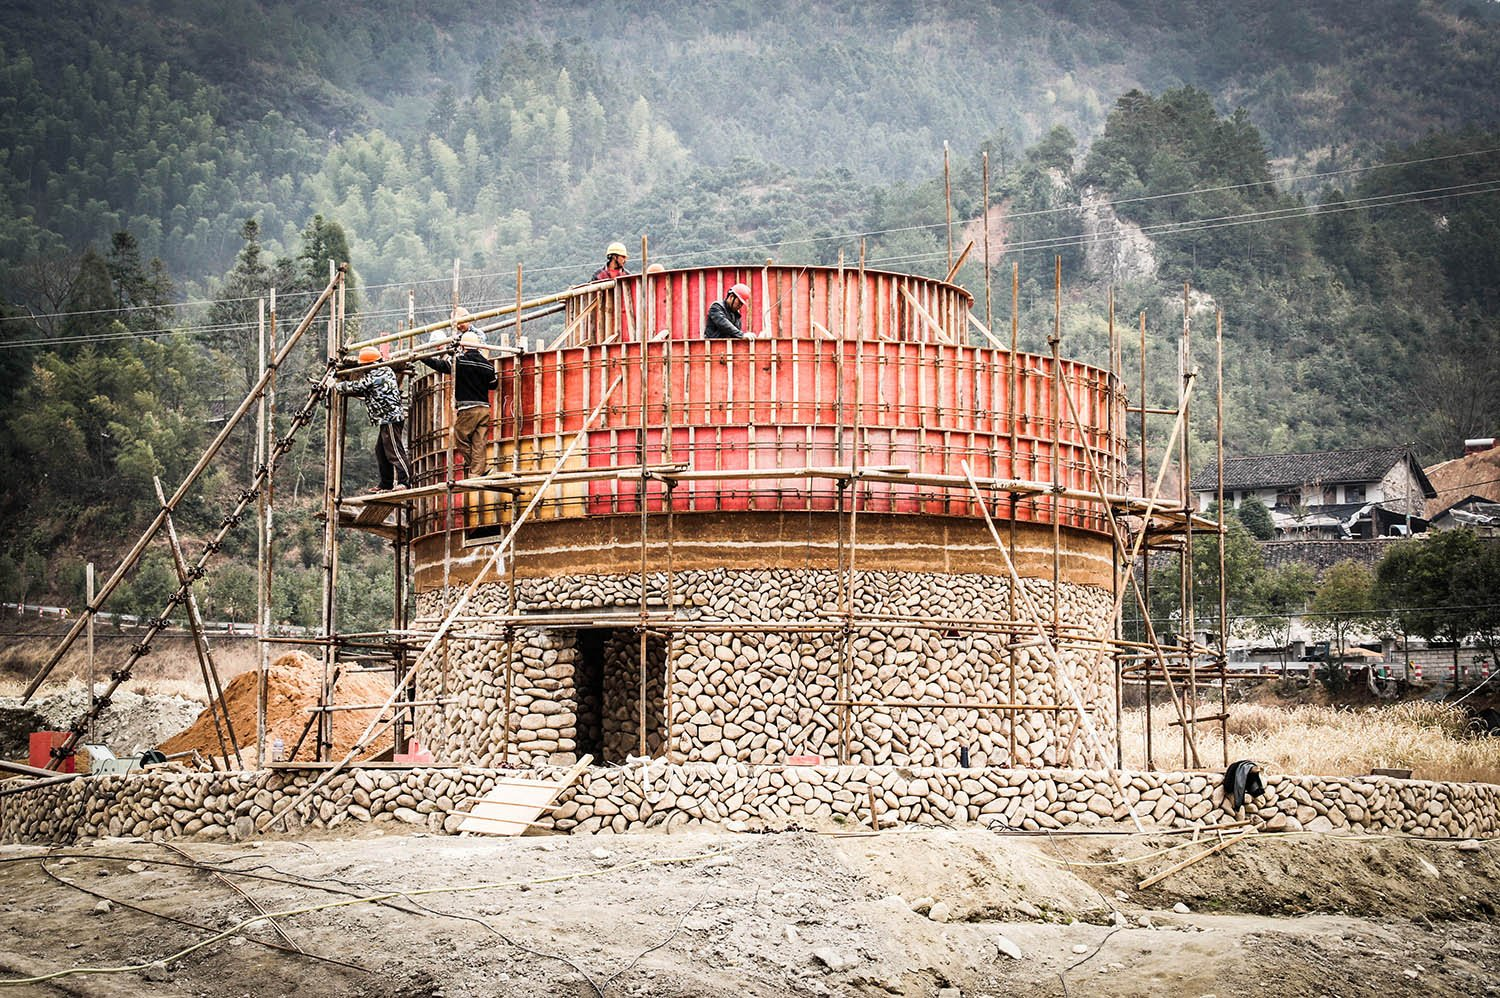 Hostels - construction of the stone basement and the rammed earth wall at the first floor